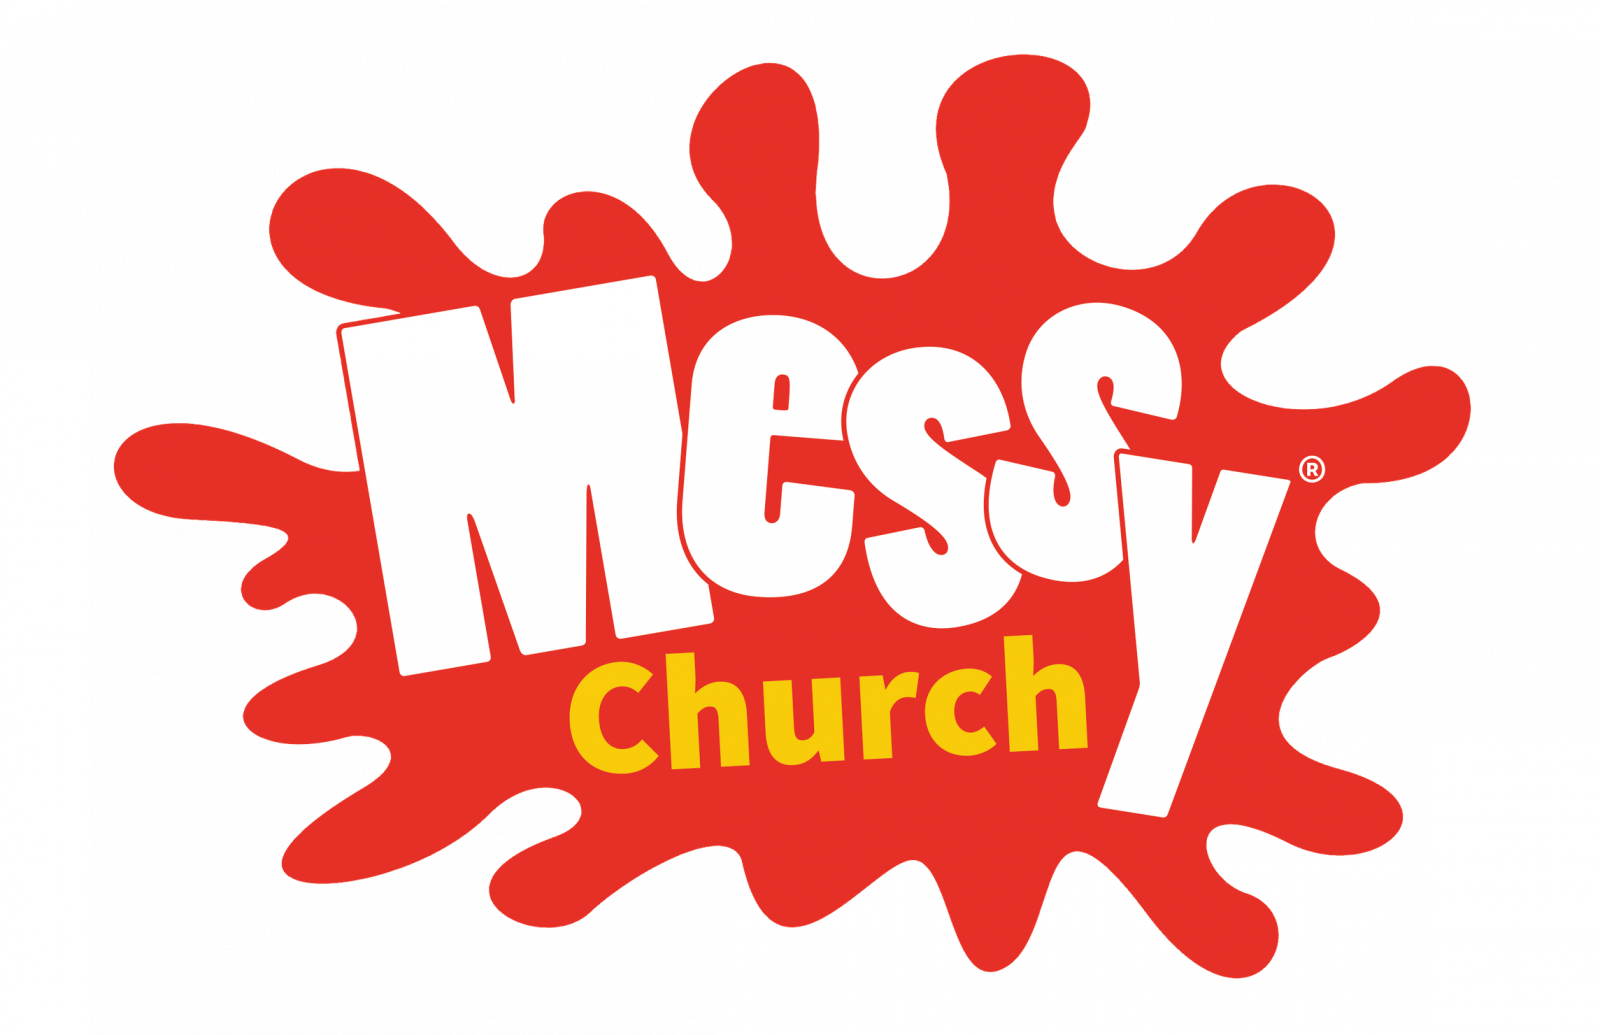 Messy Church | Image